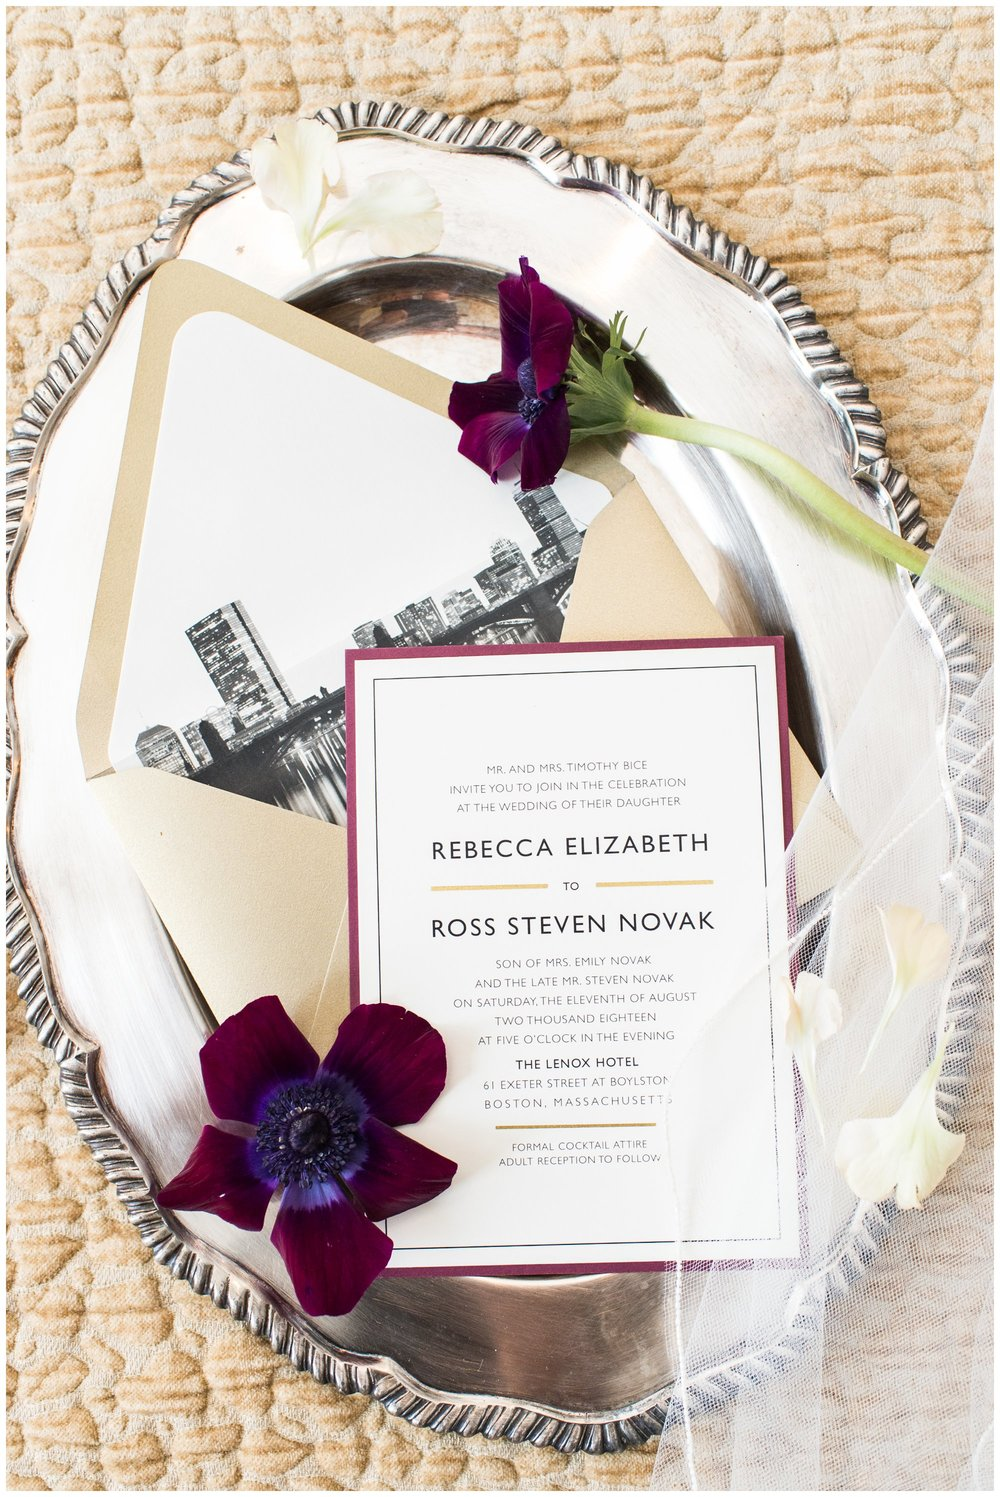 Lenox Hotel Wedding invitation suite custom by Happy Frog Invitations on a vintage tray with flowers table and tulip